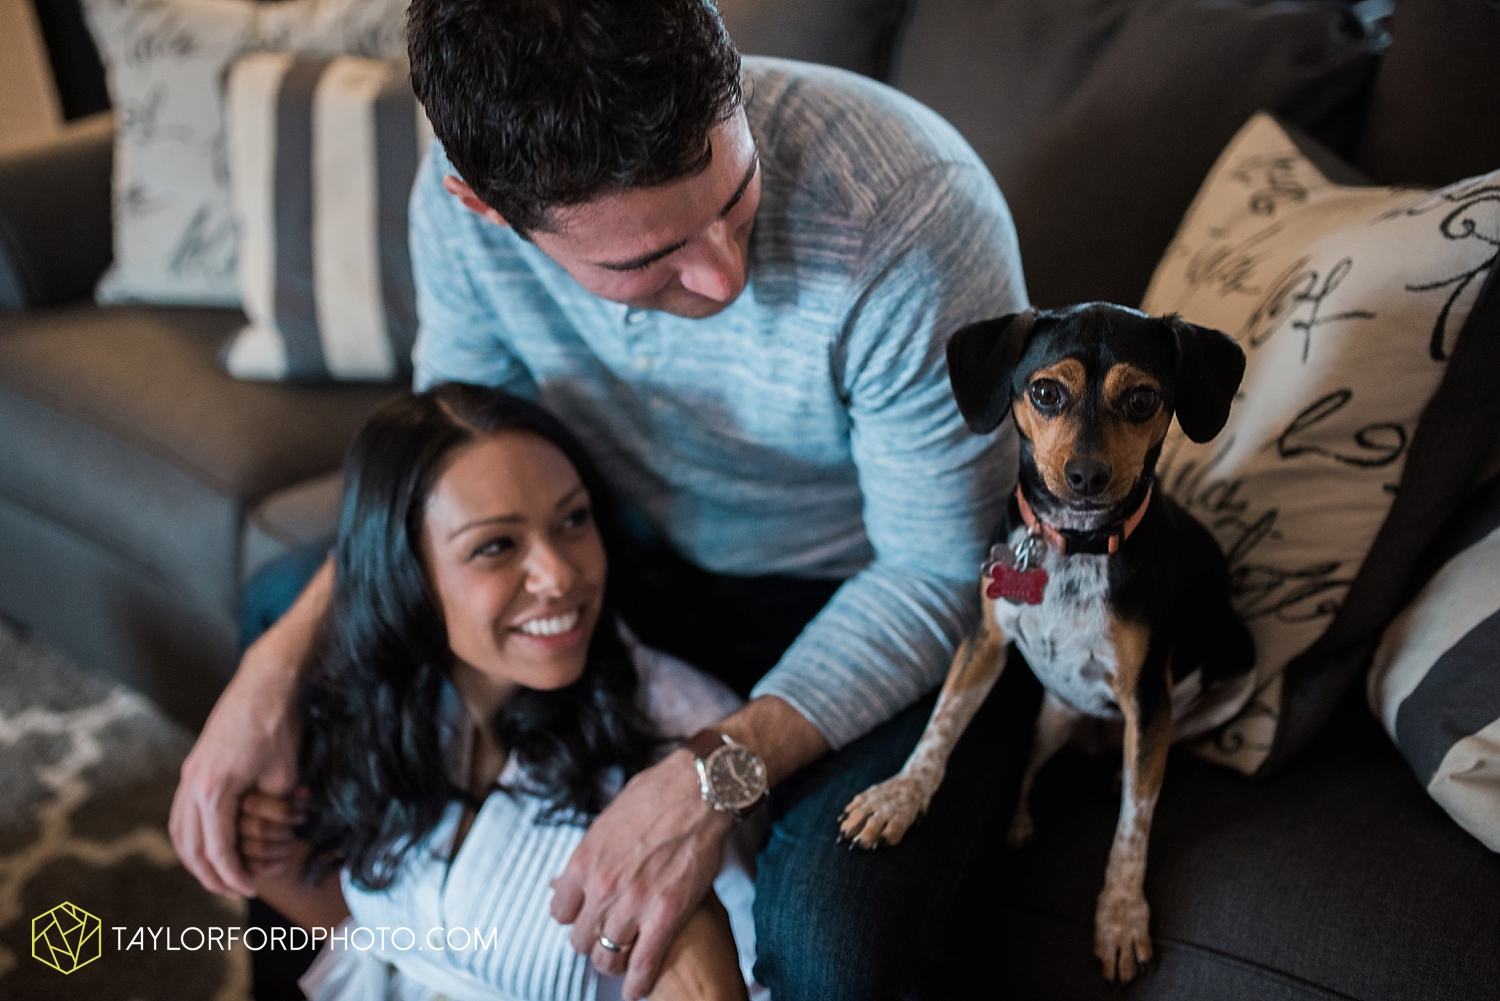 nashville_tennessee_maternity_lifestyle_photographer_taylor_ford_4207.jpg